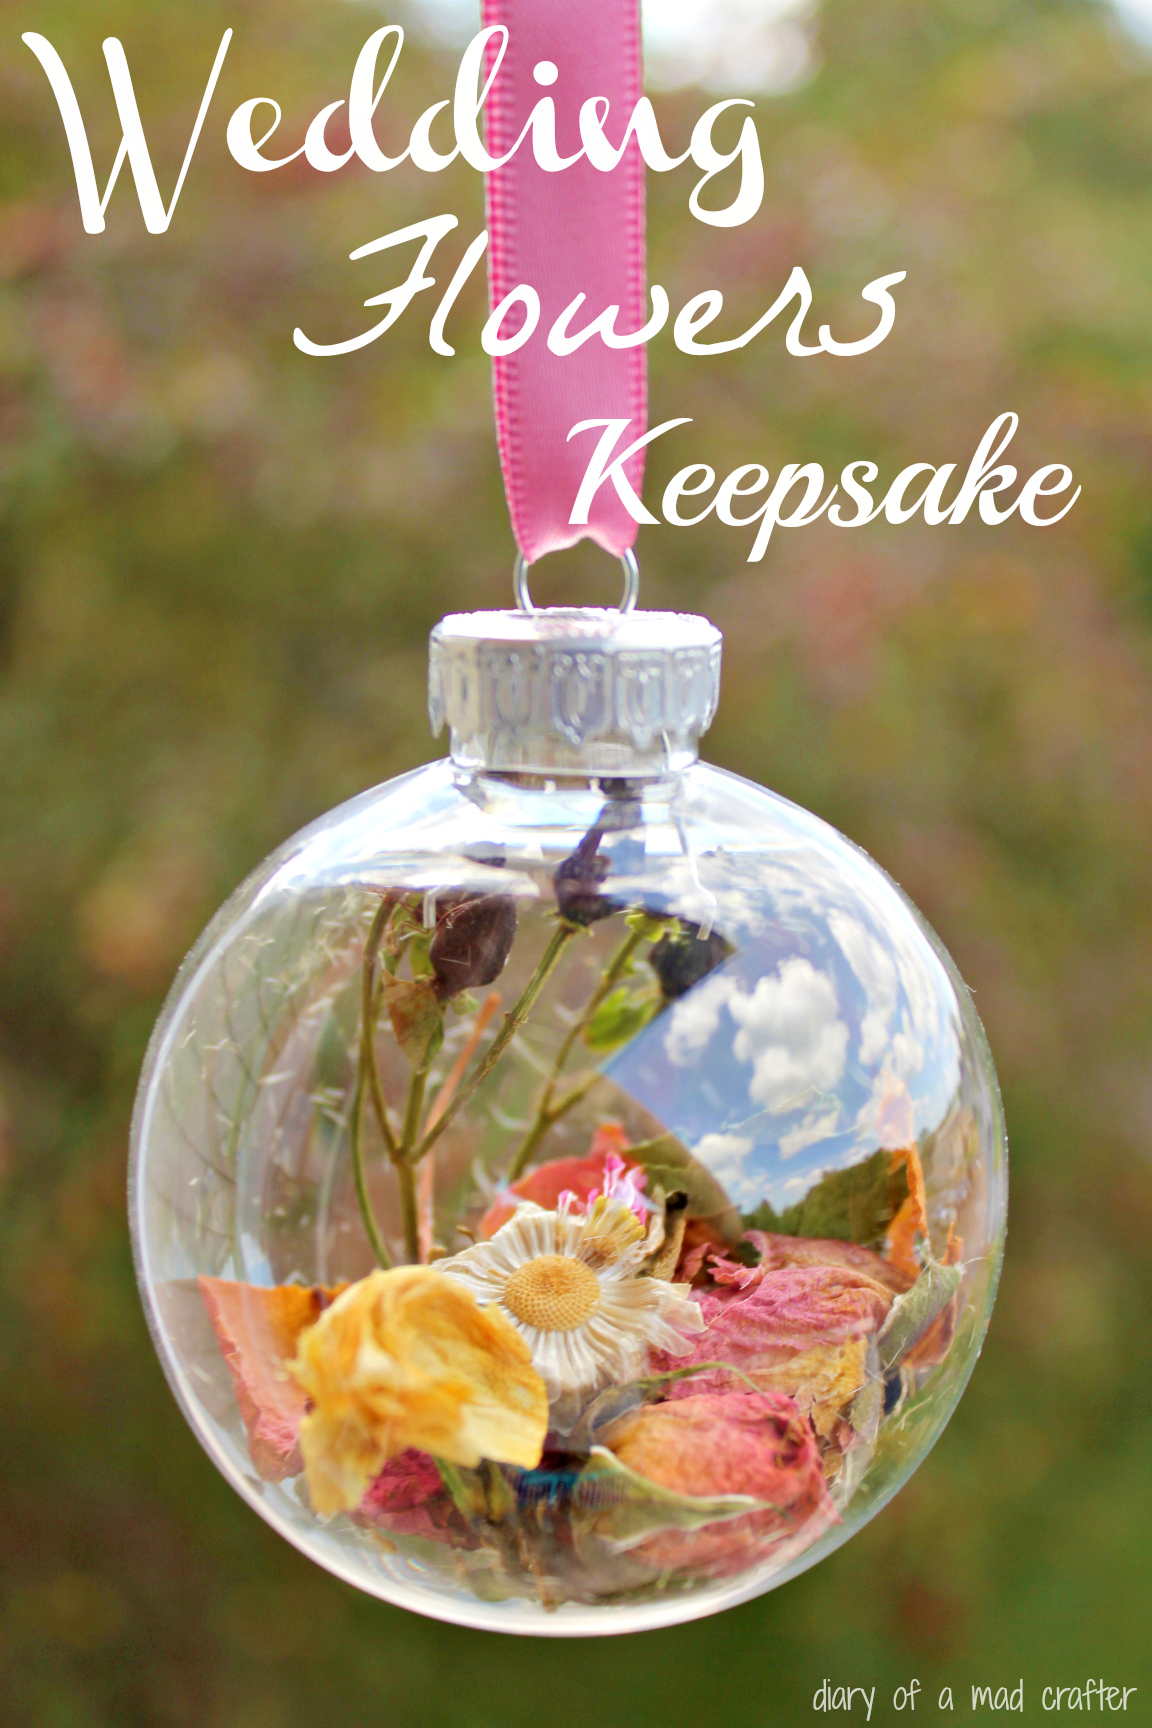 Bridal Bouquet Keepsake An Inspiration Diary of a Mad Crafter